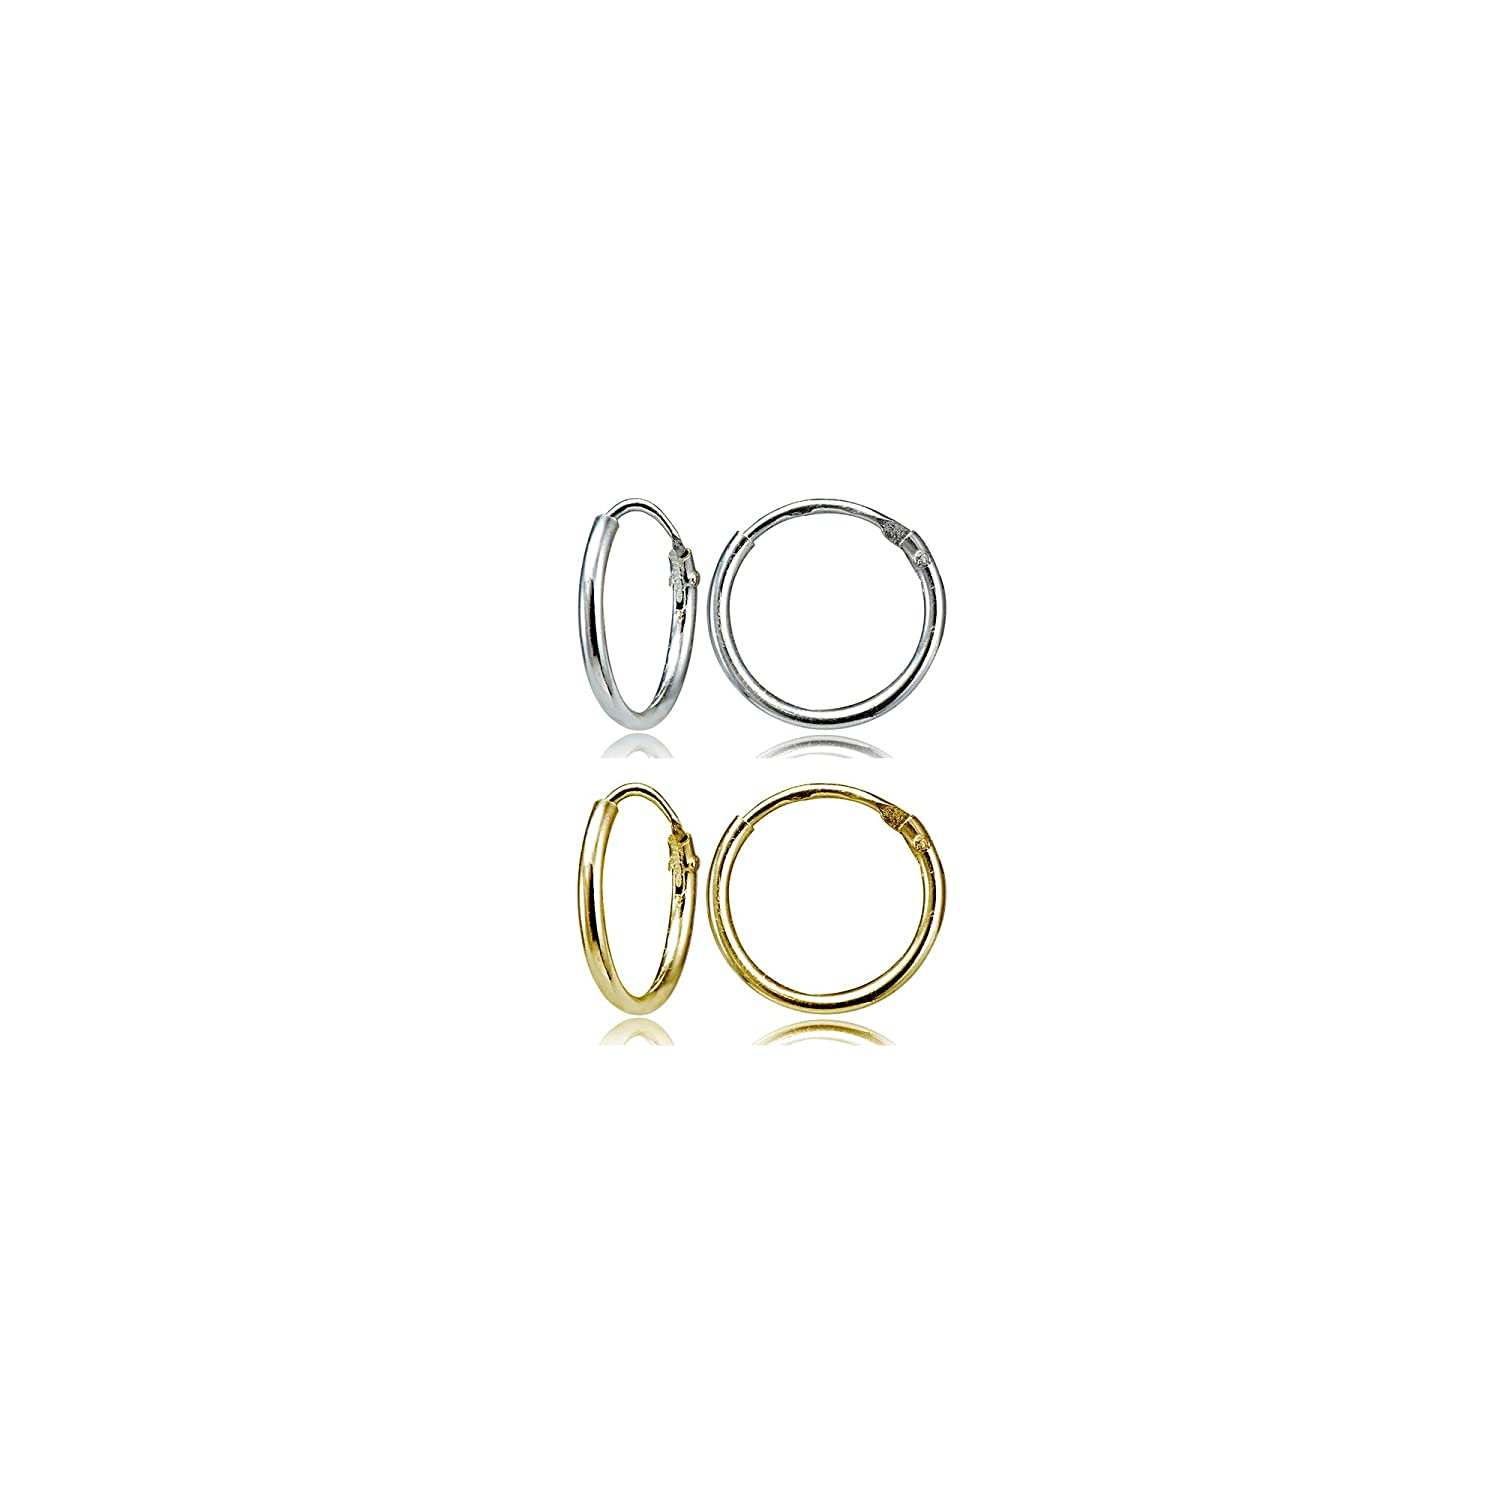 Set of 2 Pairs Sterling Silver & Yellow Gold Flashed Tiny Endless 10mm Round Unisex Hoop Cartilage Earrings Hoops 4 Less G-SS14520-SY